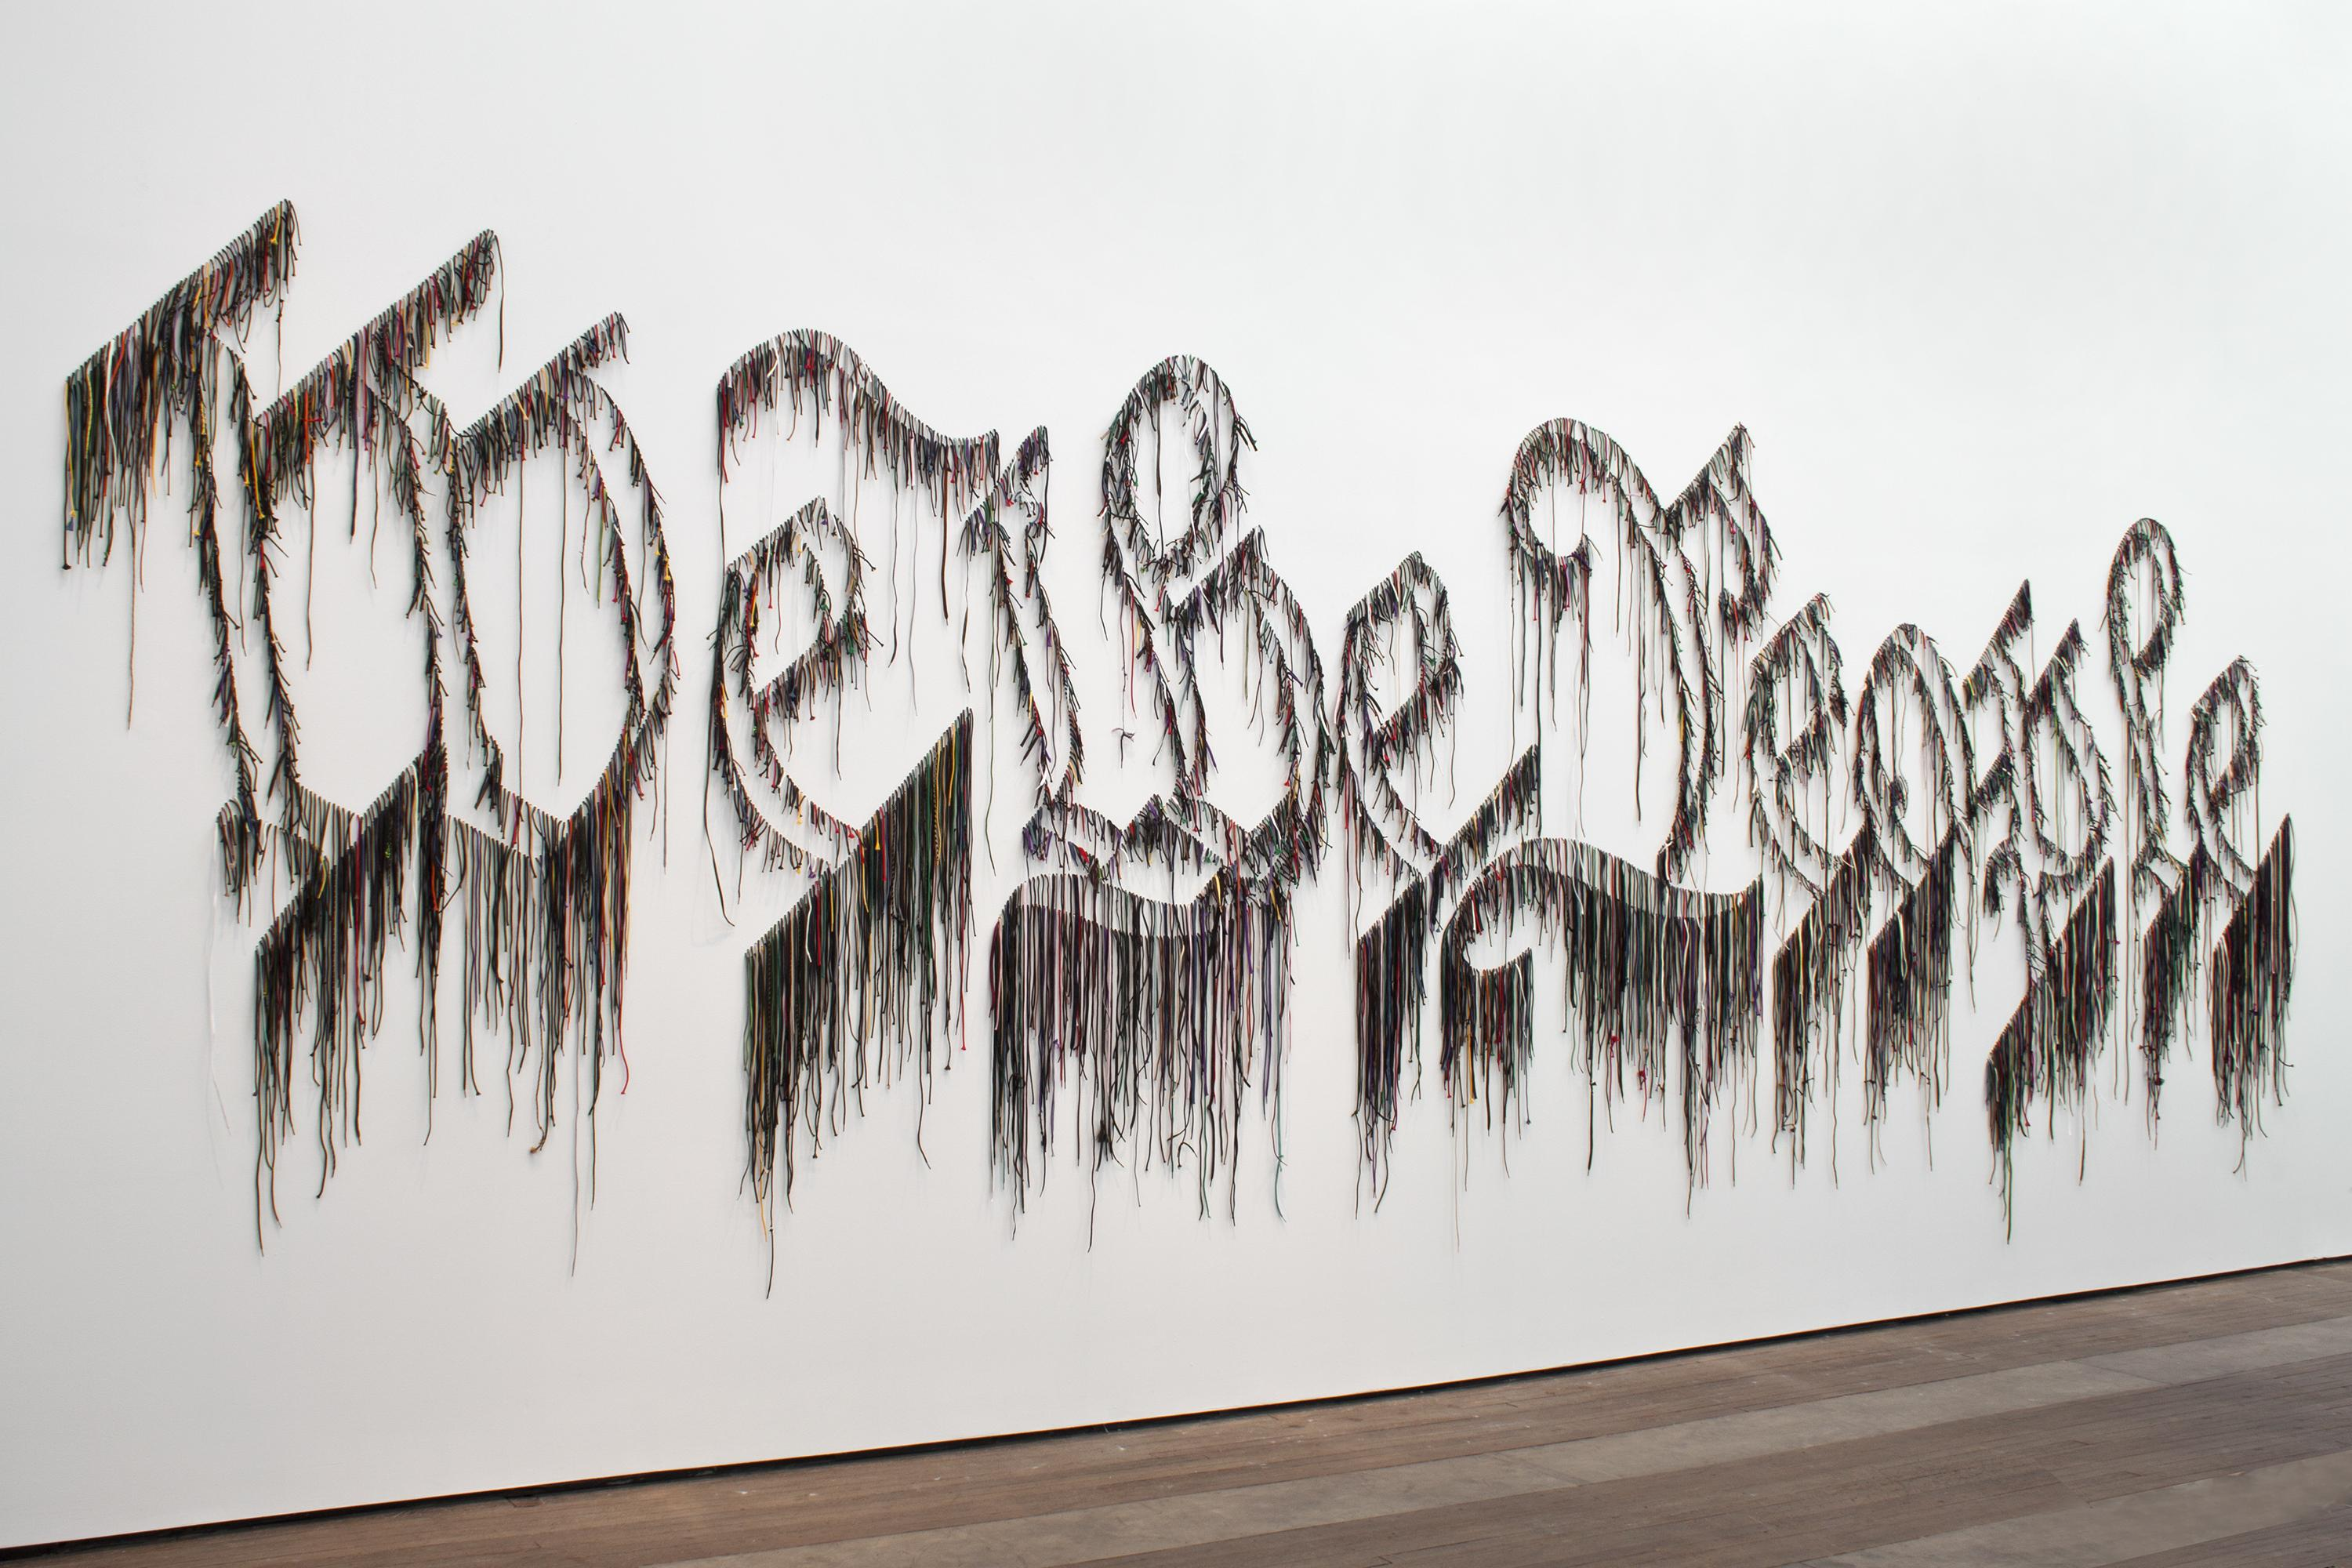 """Colorful strands hung on a white wall spell out the phrase """"We the People"""" in outlined letters that seem to drip."""